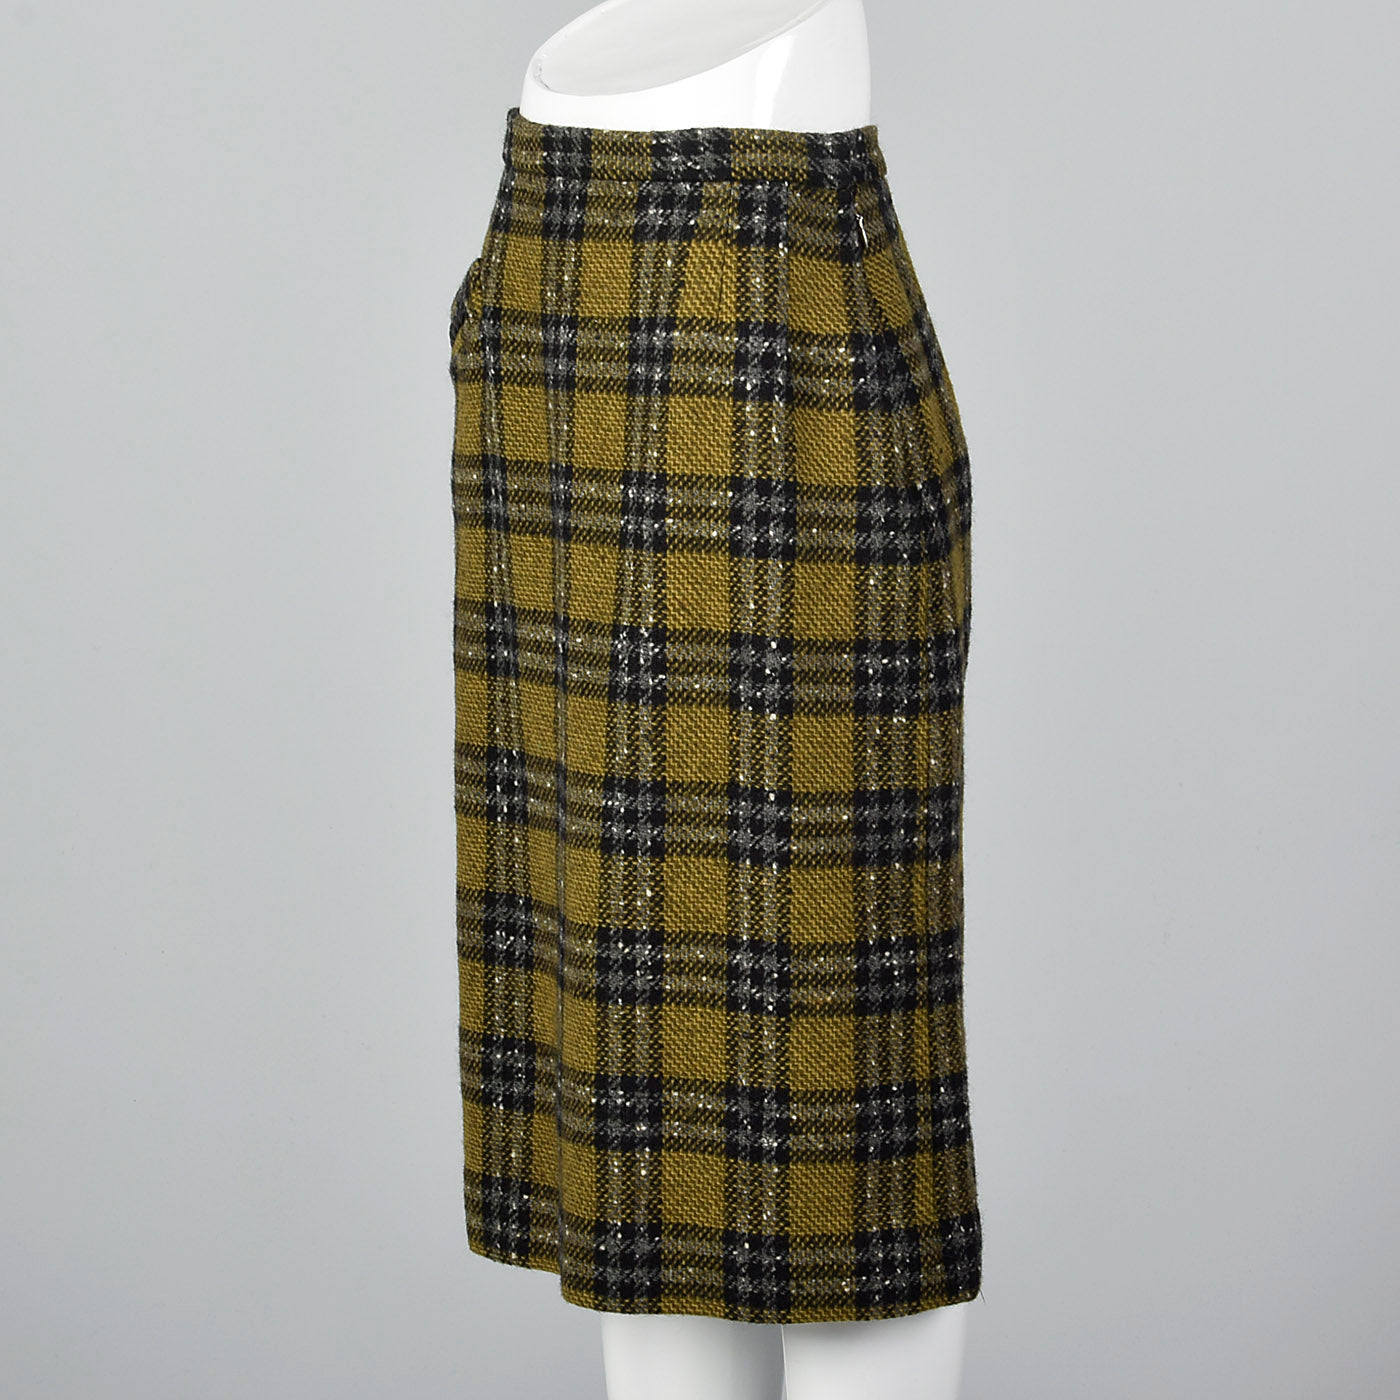 1950s Plaid Tweed Skirt with Leather Braid Trim Pocket